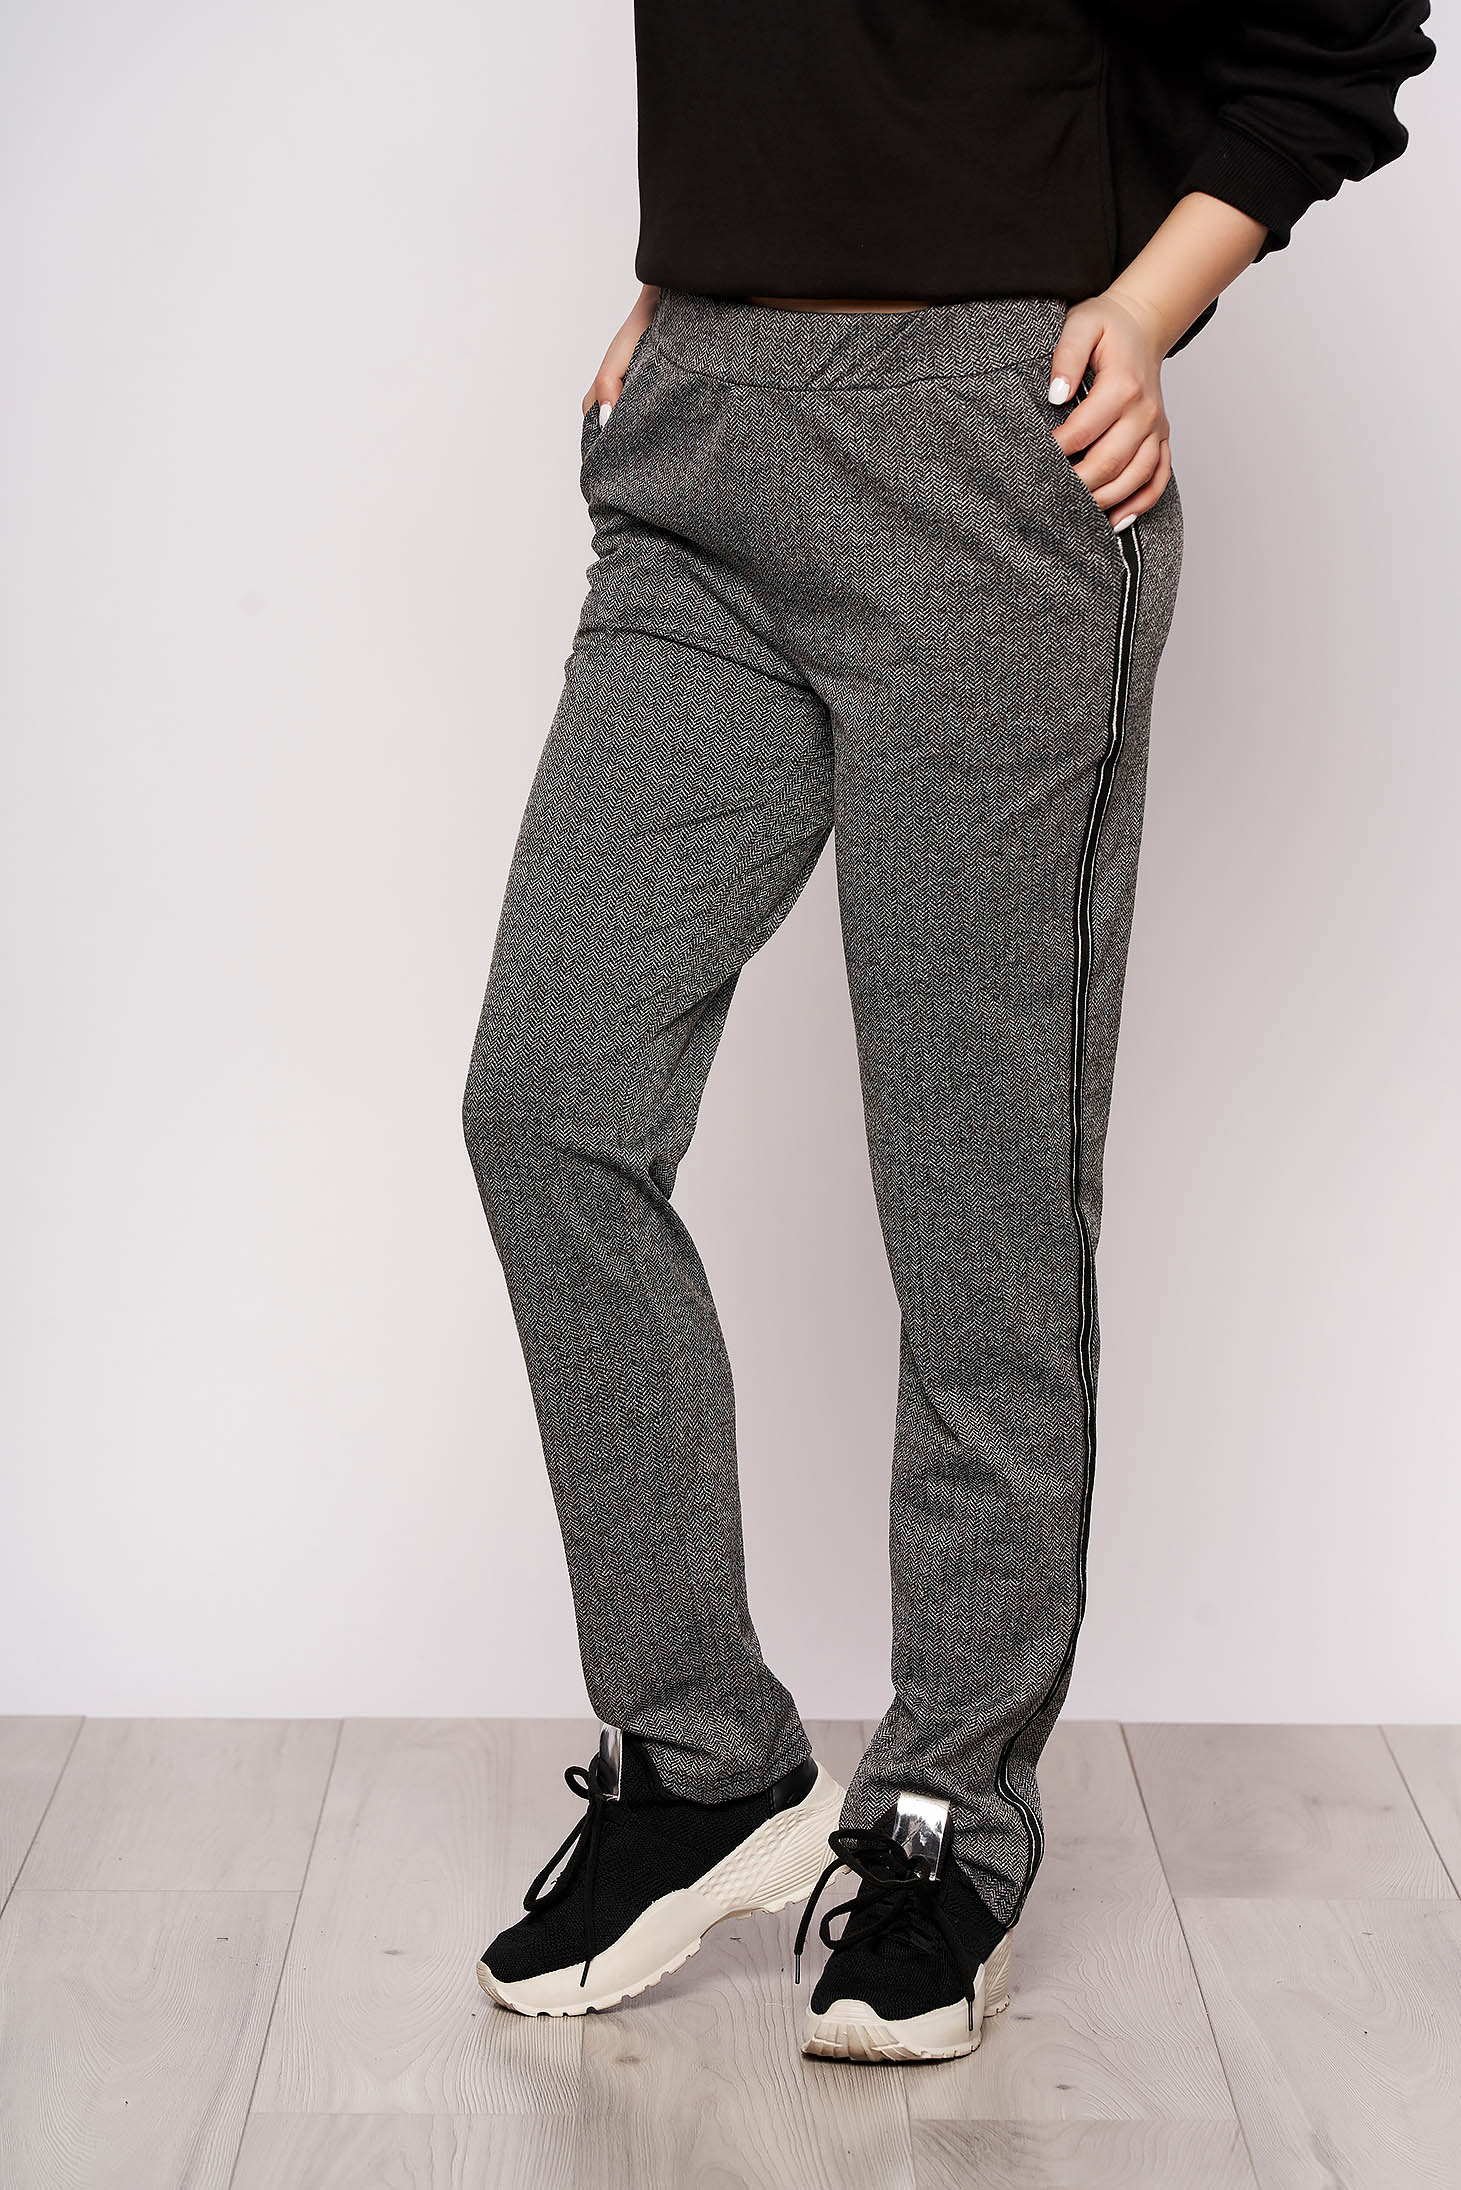 Black casual trousers with straight cut medium waist slightly elastic fabric